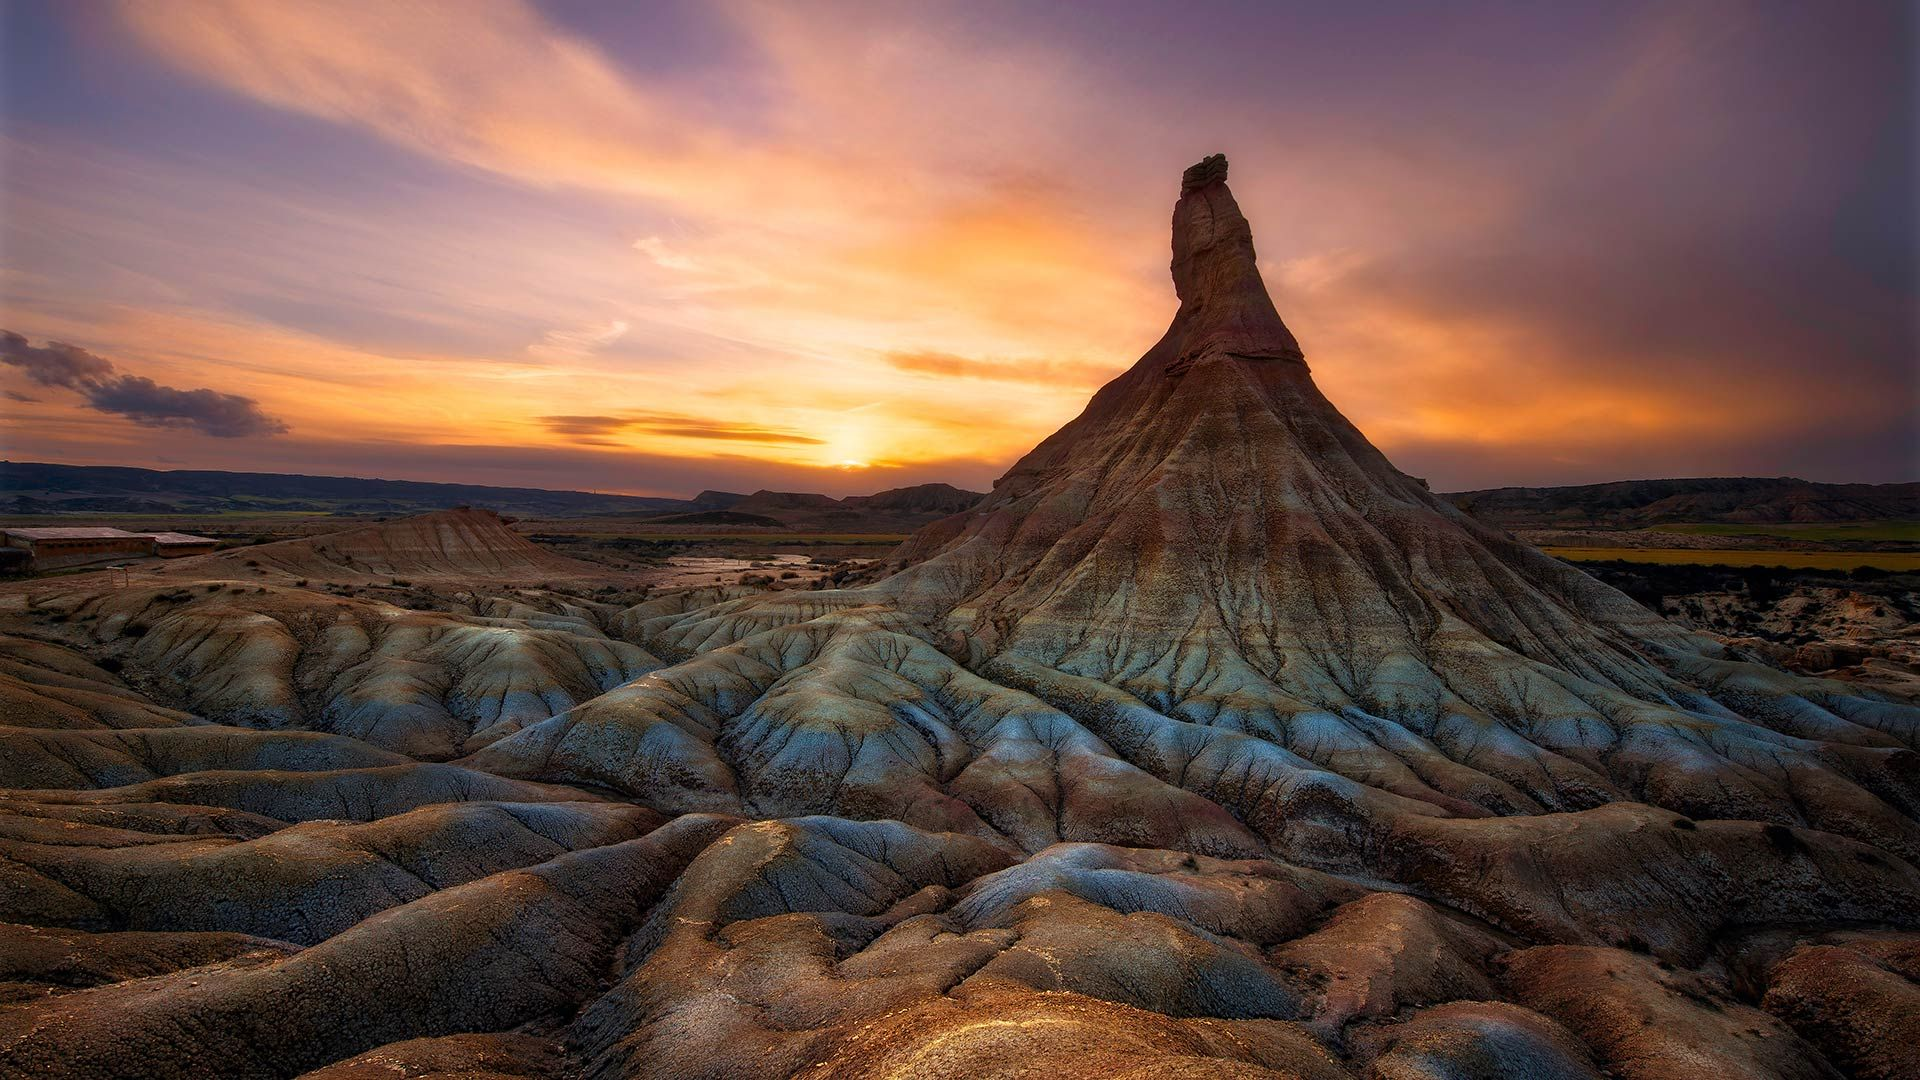 Colourful sunset over Castildetierra, in the Natural Park of Bardenas Reales, Navarre, Spain